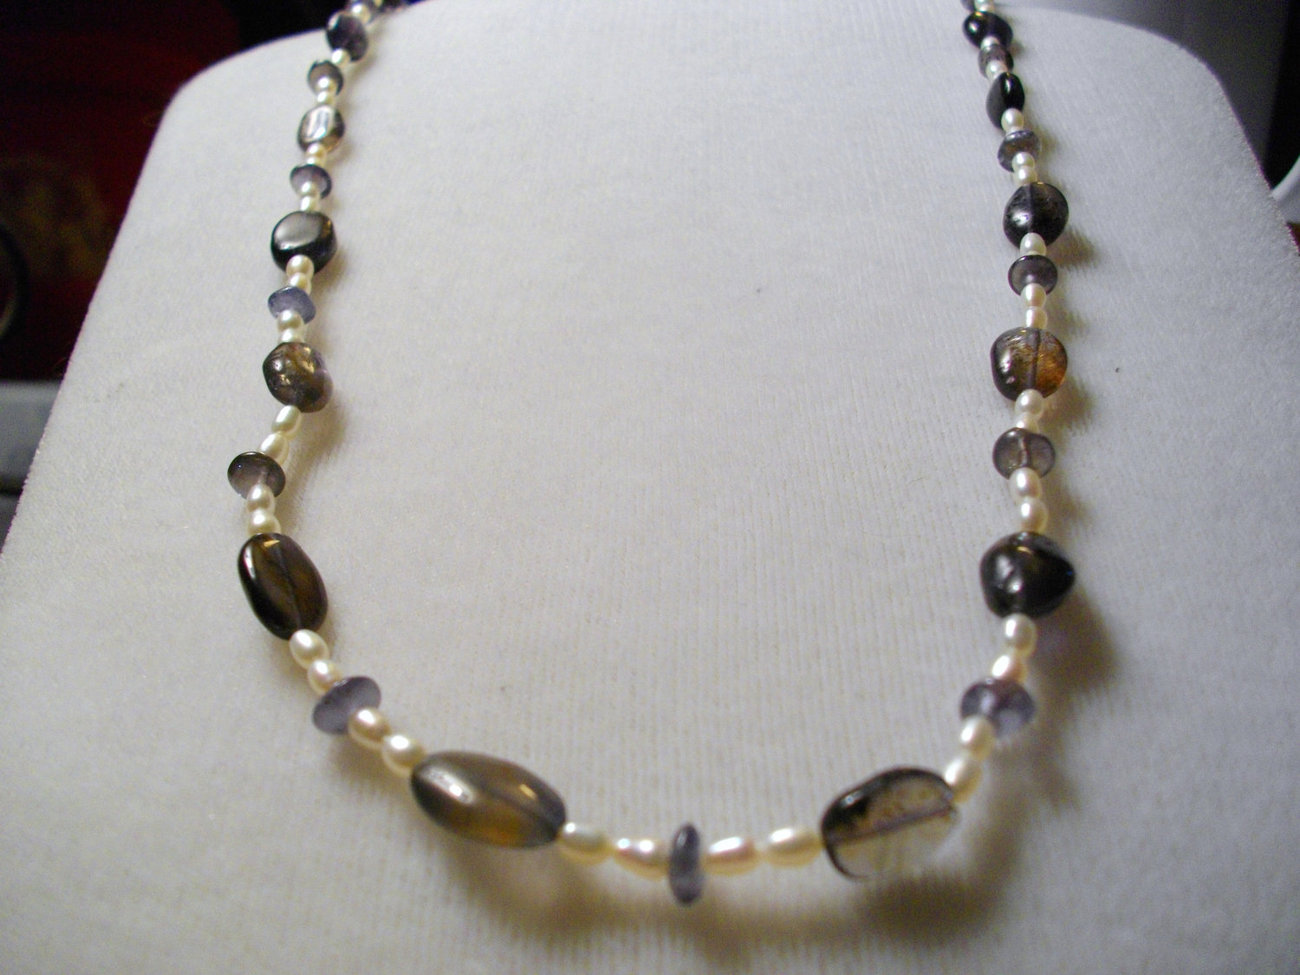 Iolite and Freshwater Pearls Necklace and Bracelet Set